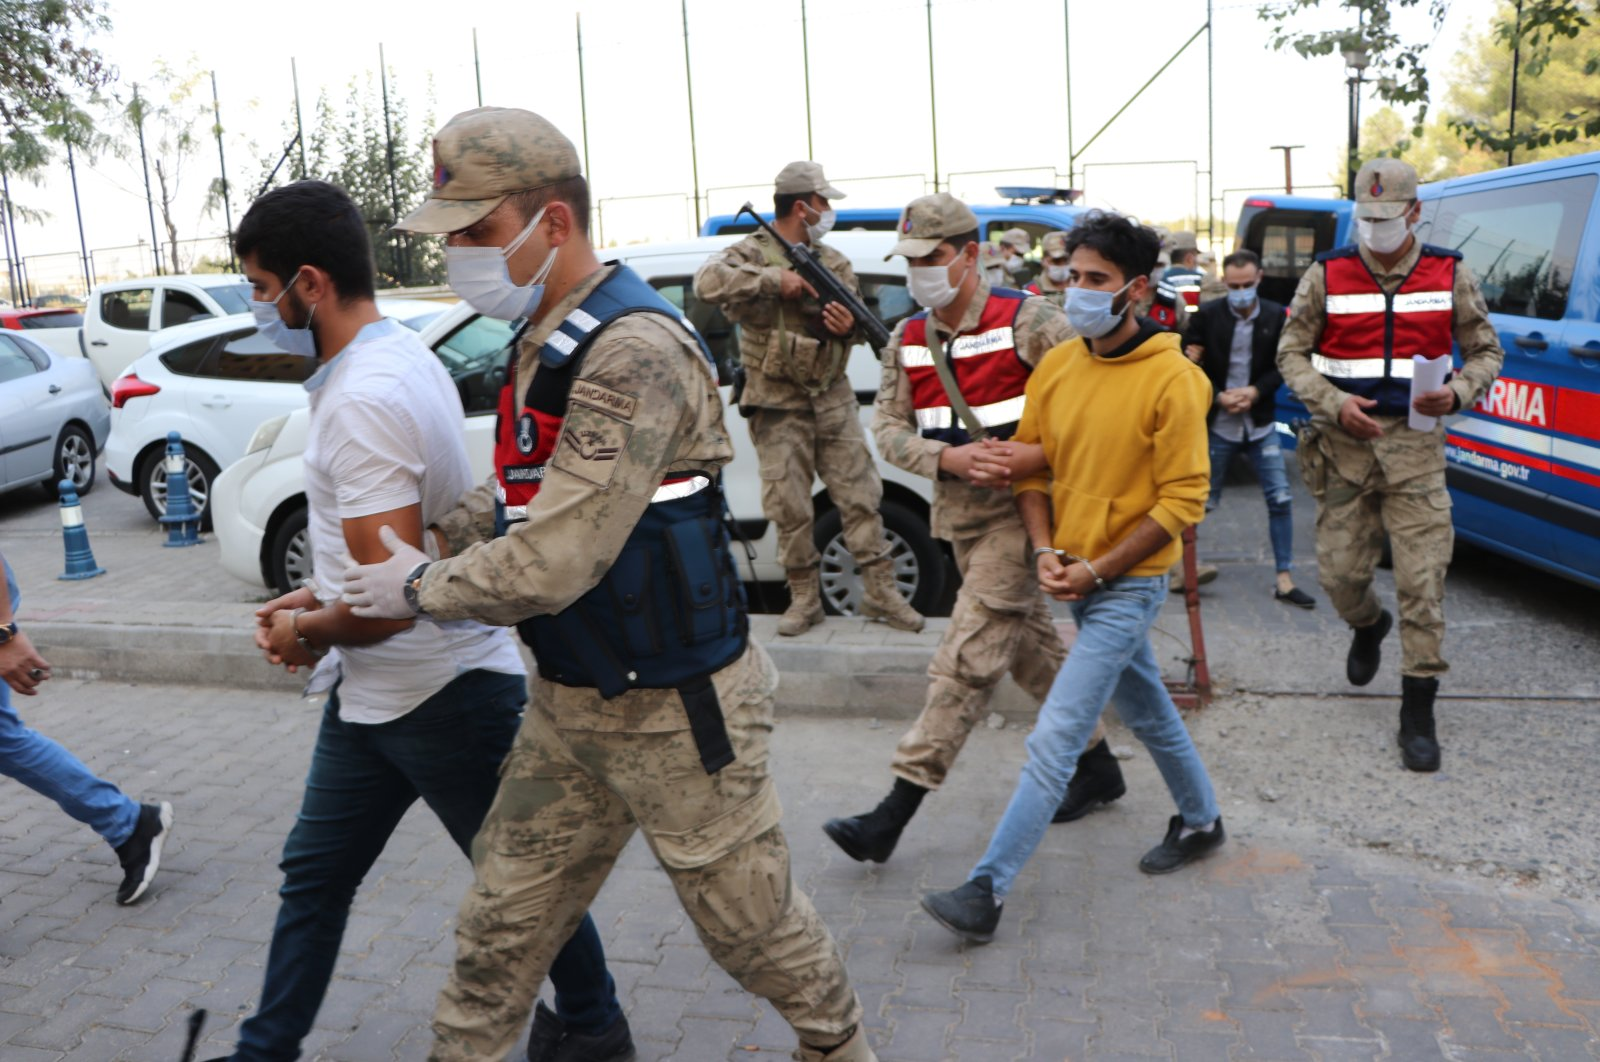 PKK terrorists were brought to the court by security forces in southeastern Diyarbakır, Oct. 19, 2020. (AA Photo)